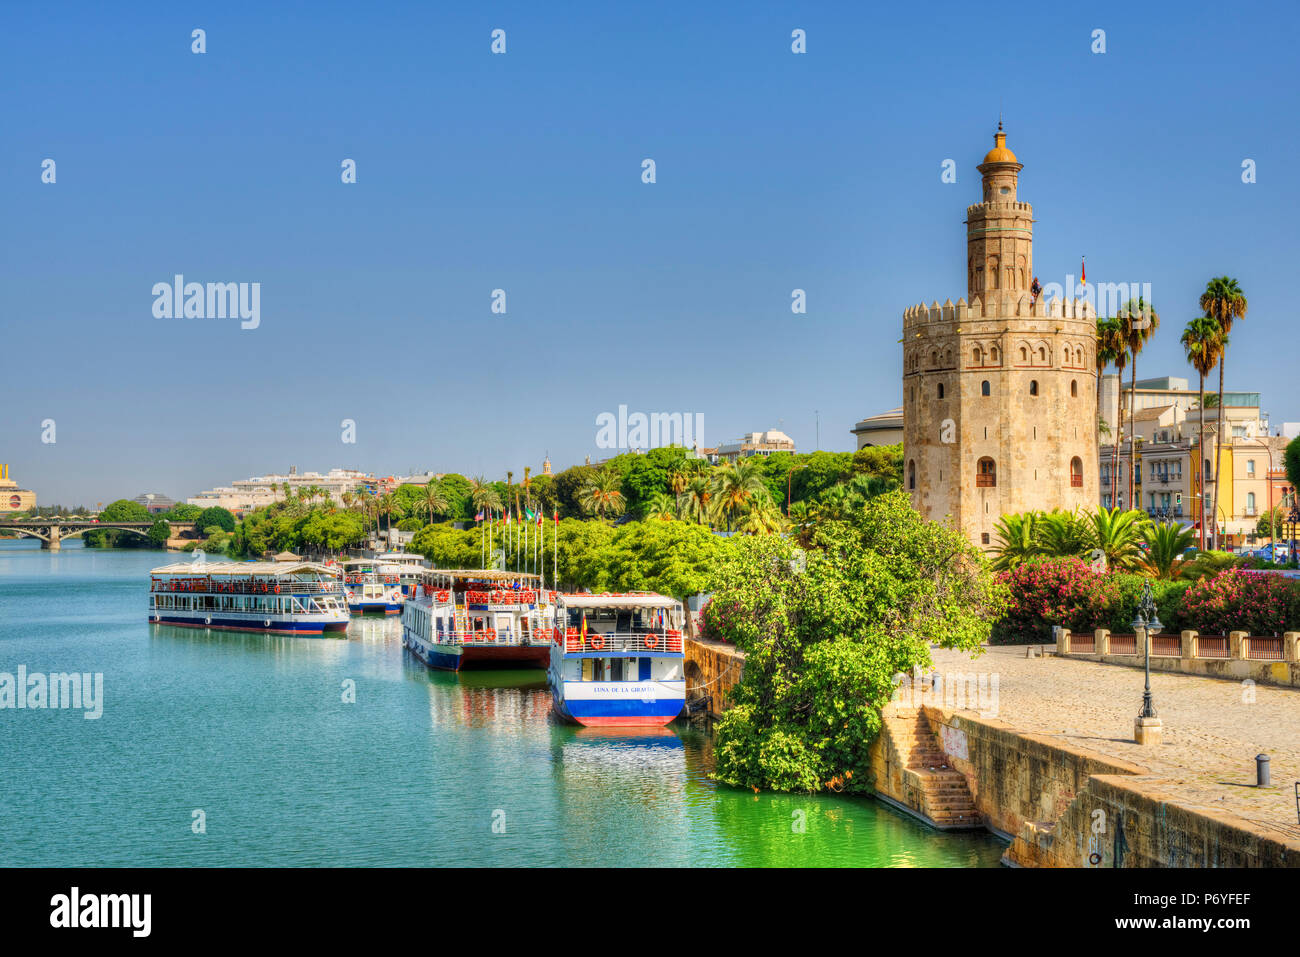 Torre del Oro and Rio Guadelquivir, Sevilla, Andalusia, Spain - Stock Image